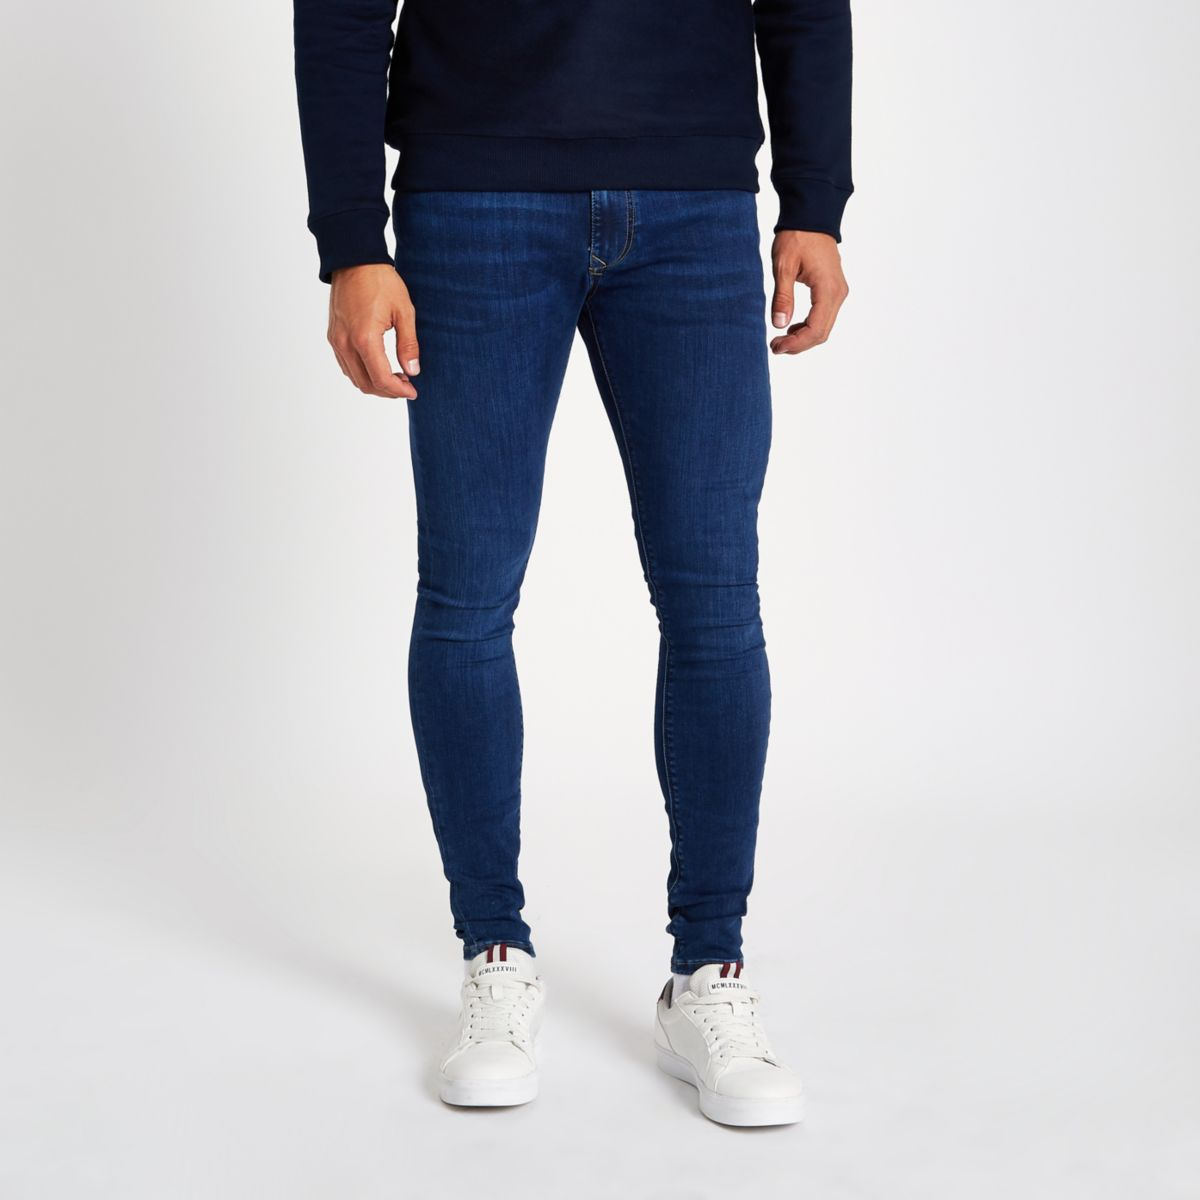 Mens Blue Ollie super skinny spray on jeans River Island gZL0lKVR